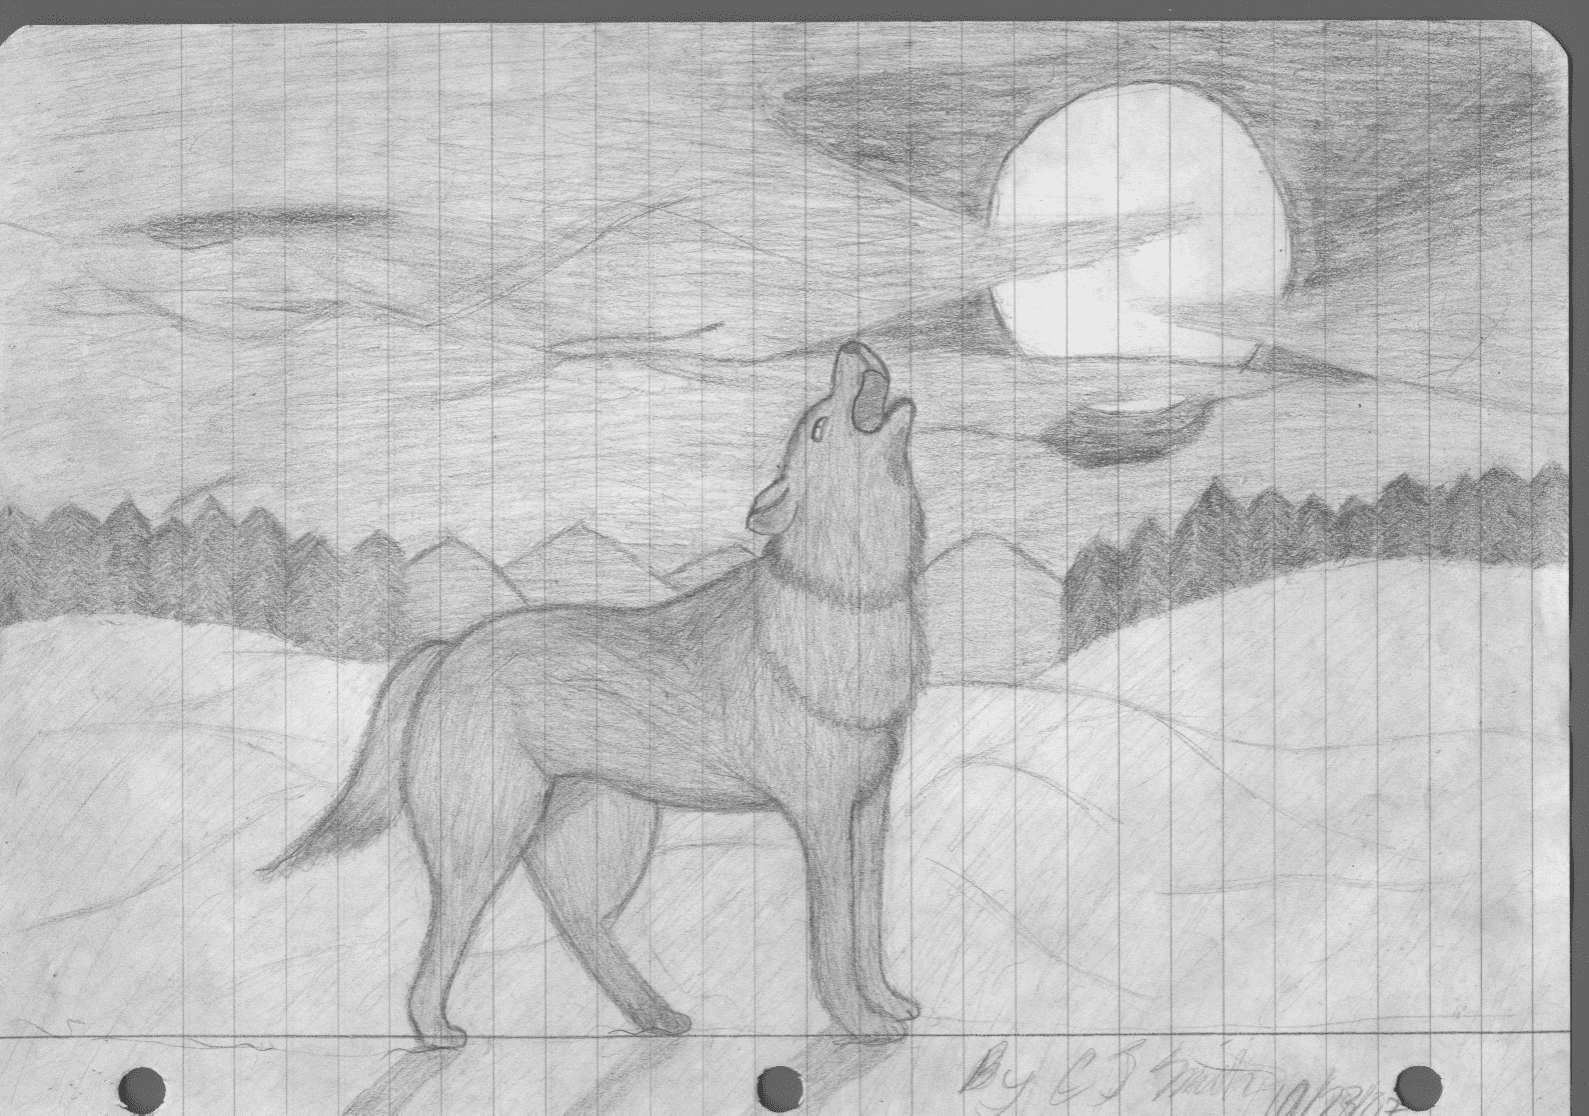 The Schmalien Page Pencil Sketches